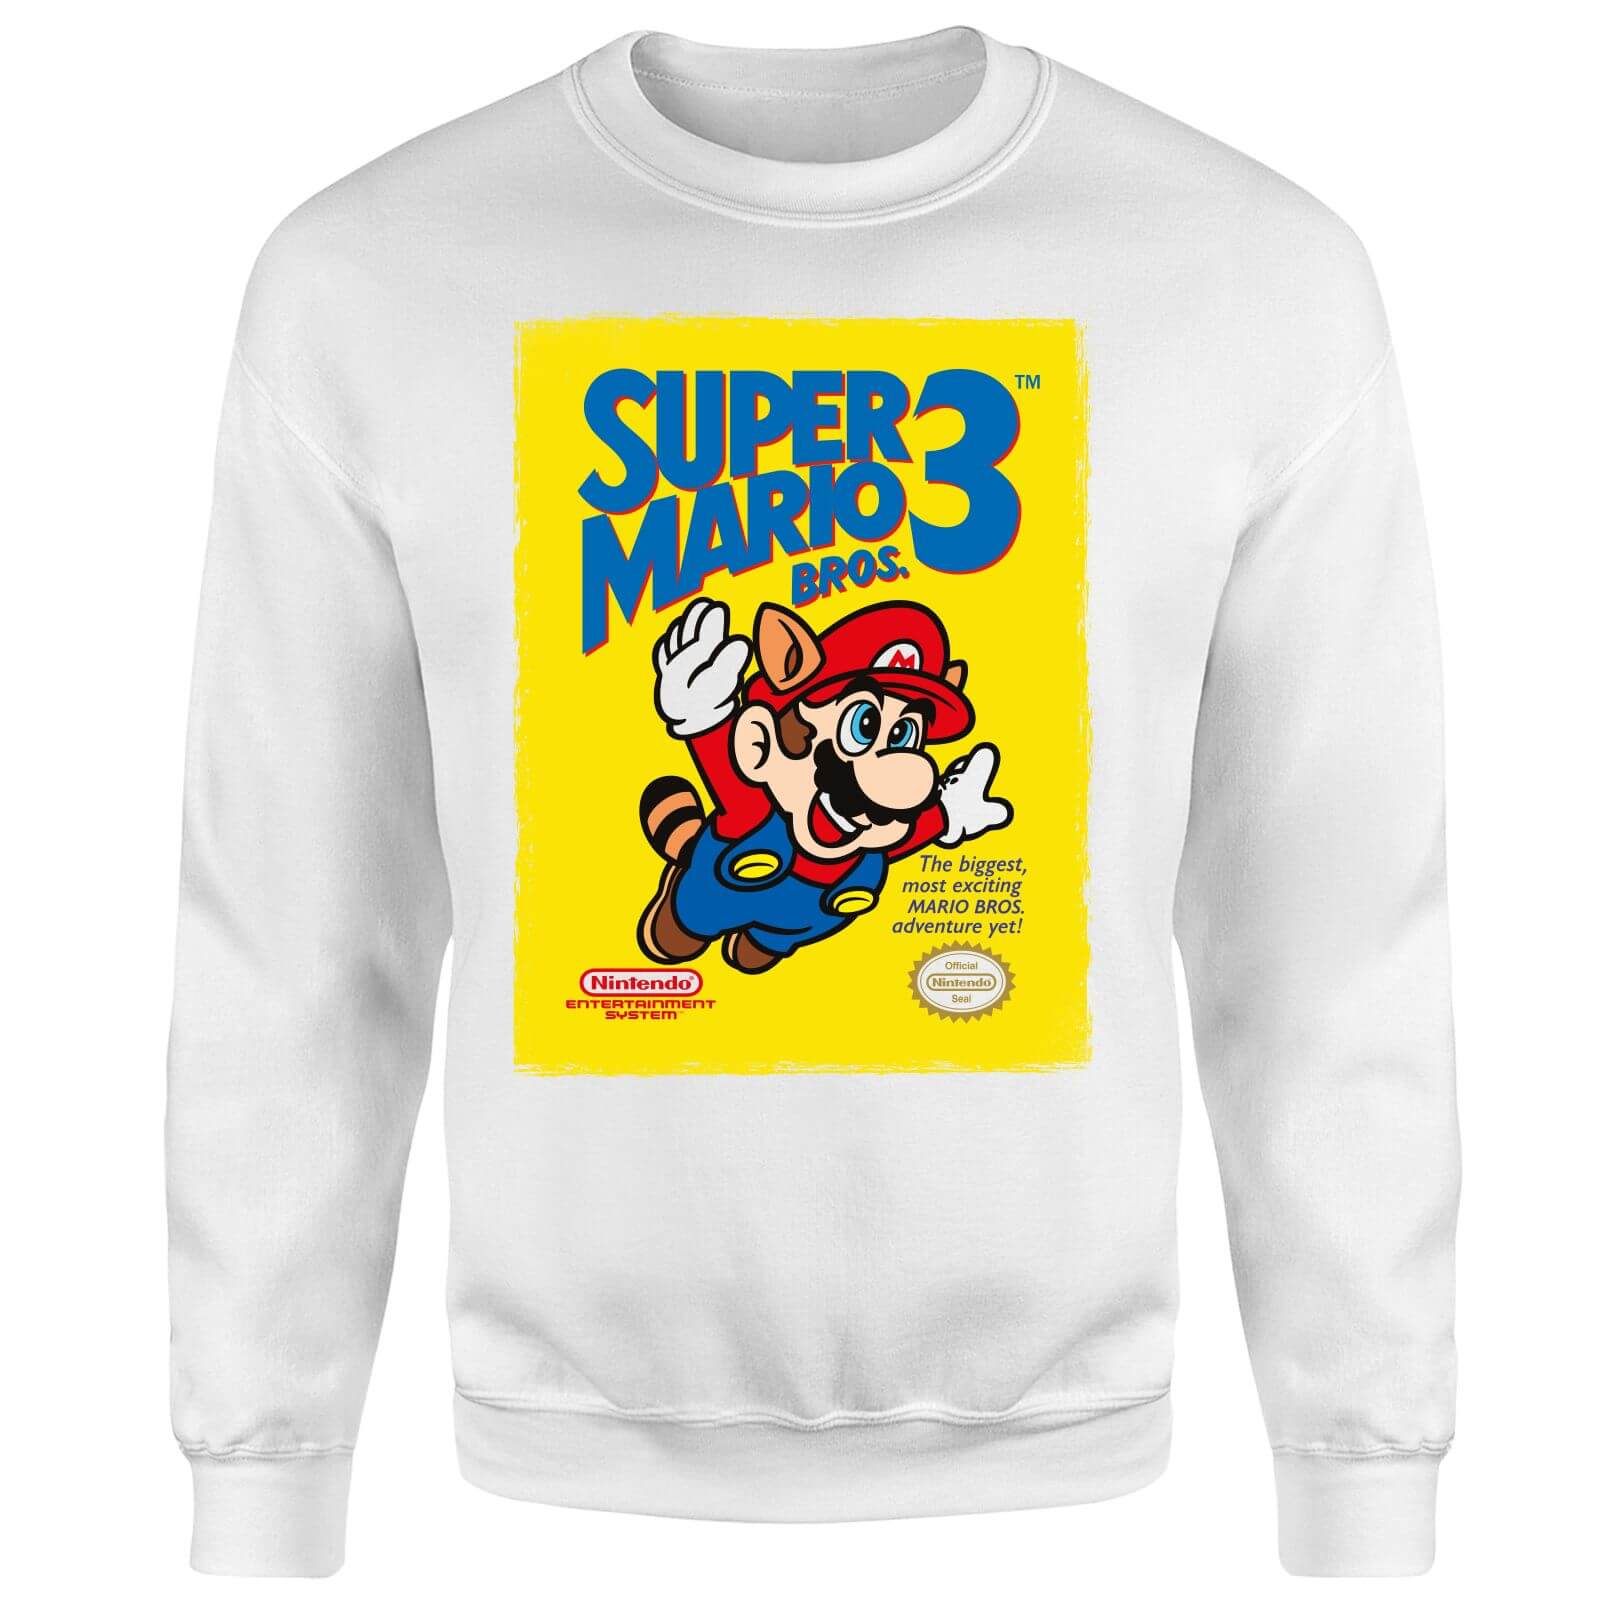 Nintendo Super Mario Bros 3 Sweatshirt - White